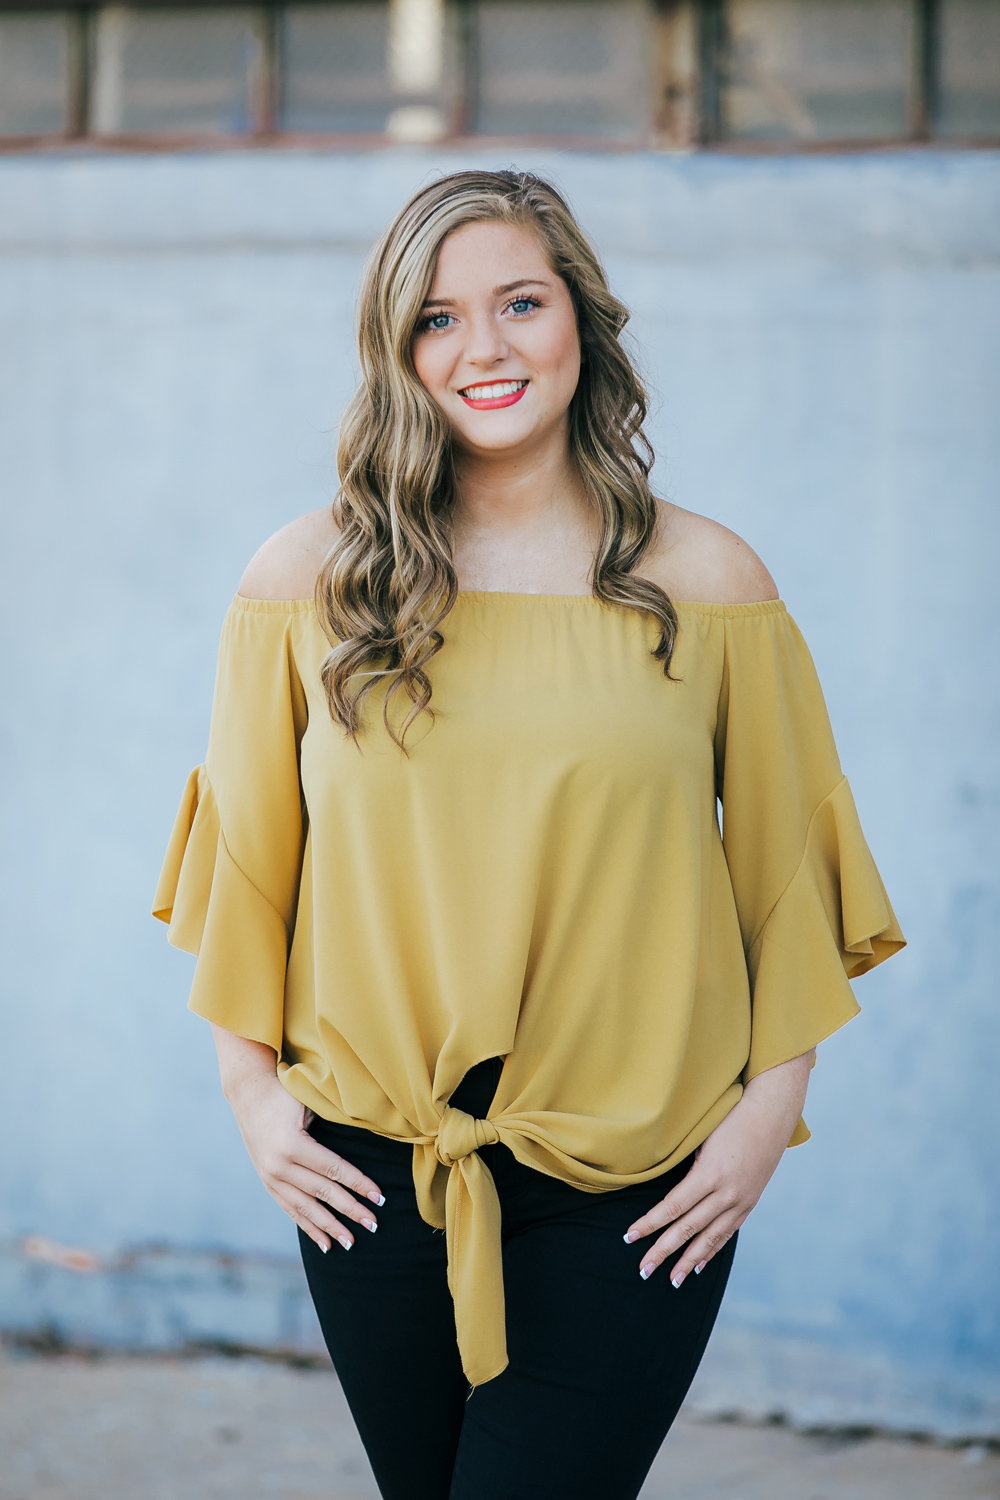 High school senior girl with long blonde hair wearing yellow top standing in front of blue wall in automobile alley in OKC by Amanda Lynn.